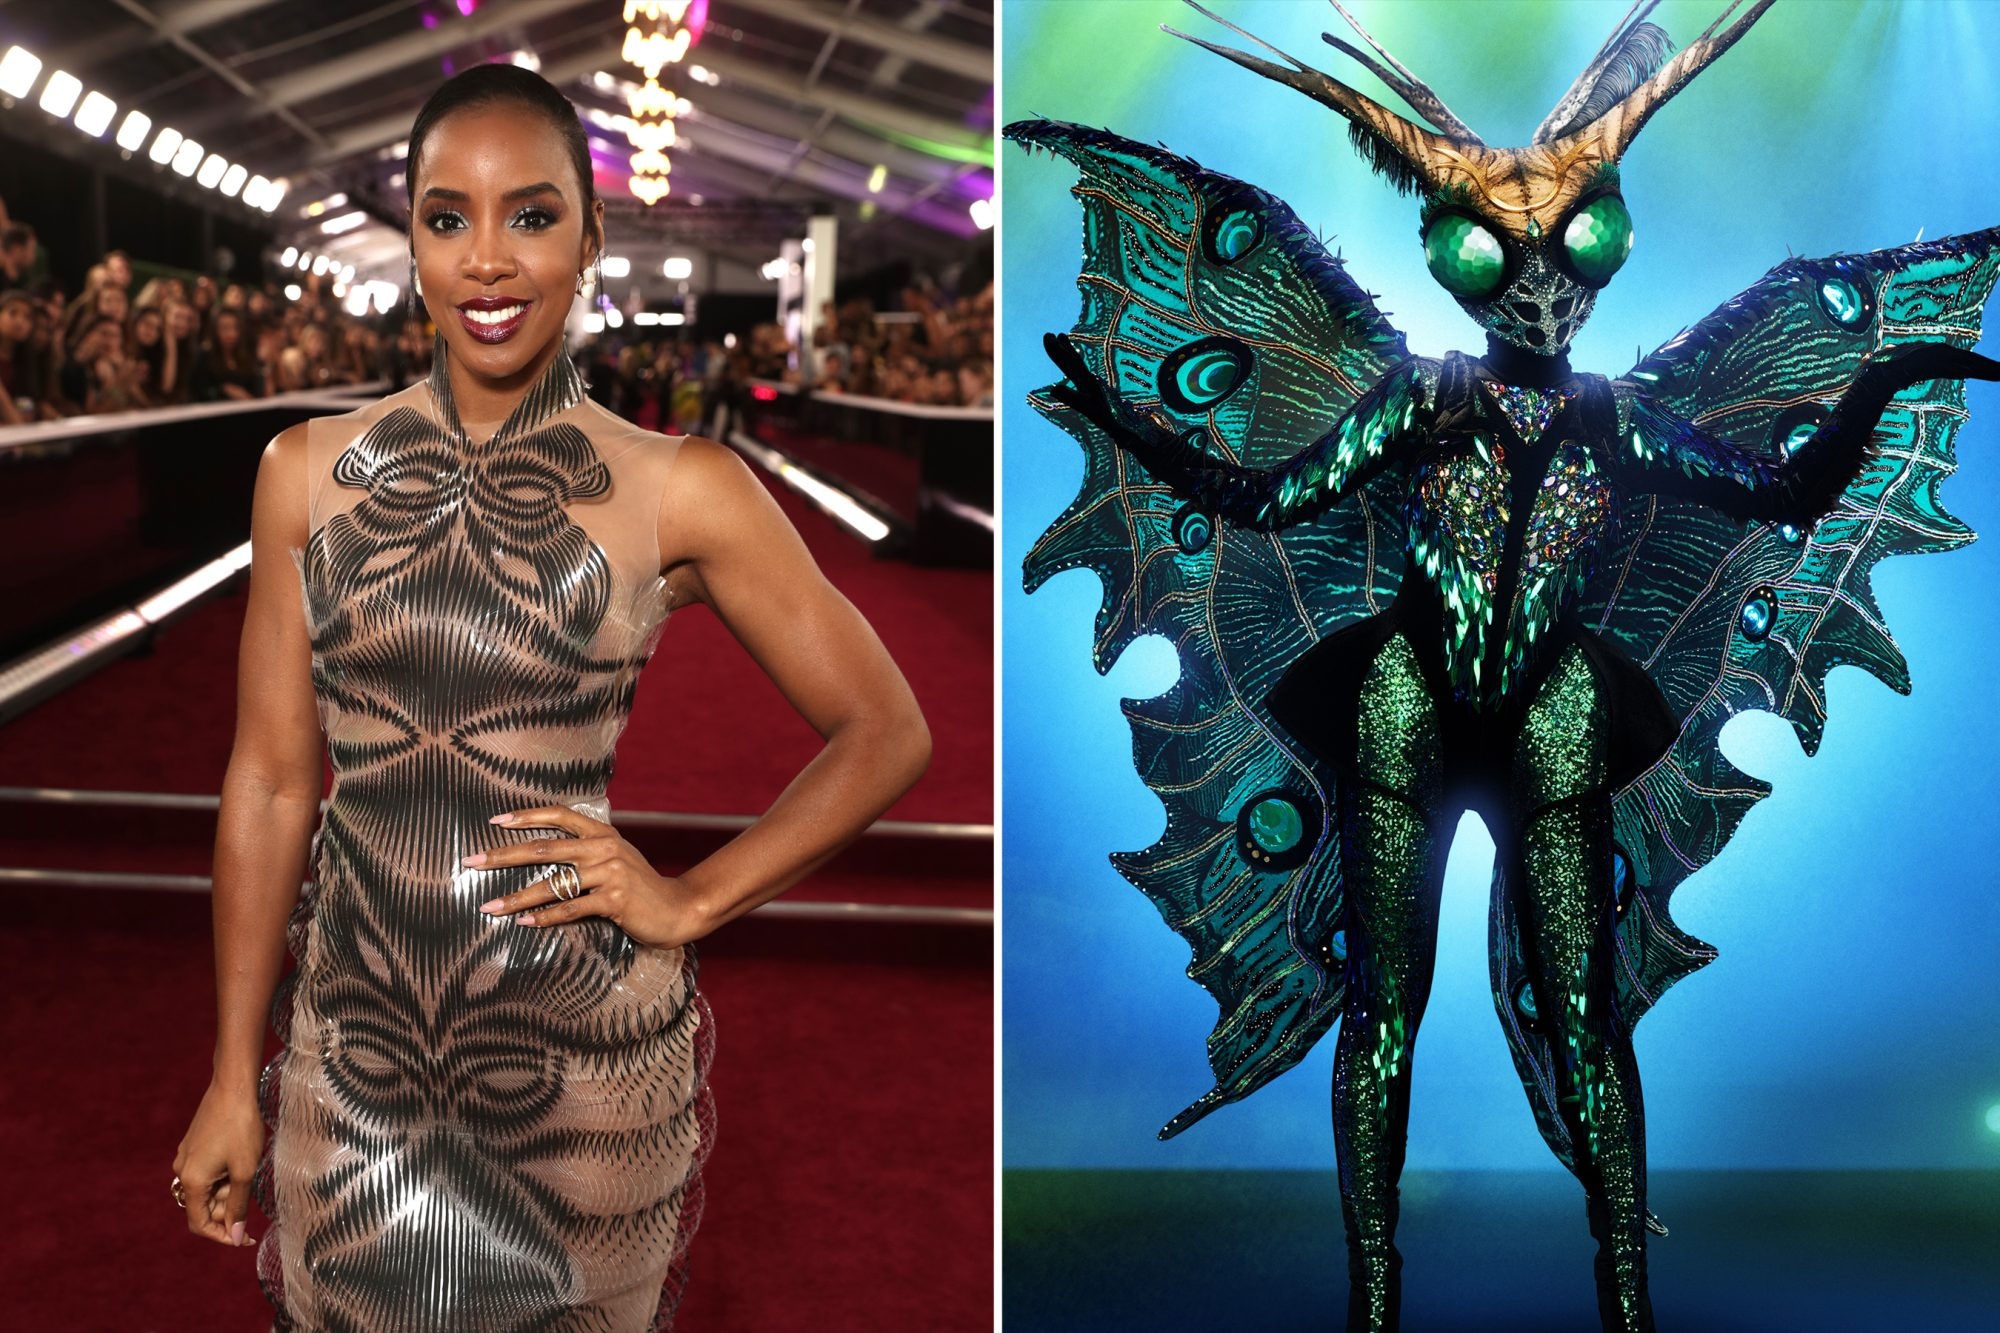 Kelly Rowland and Butterfly masked singer